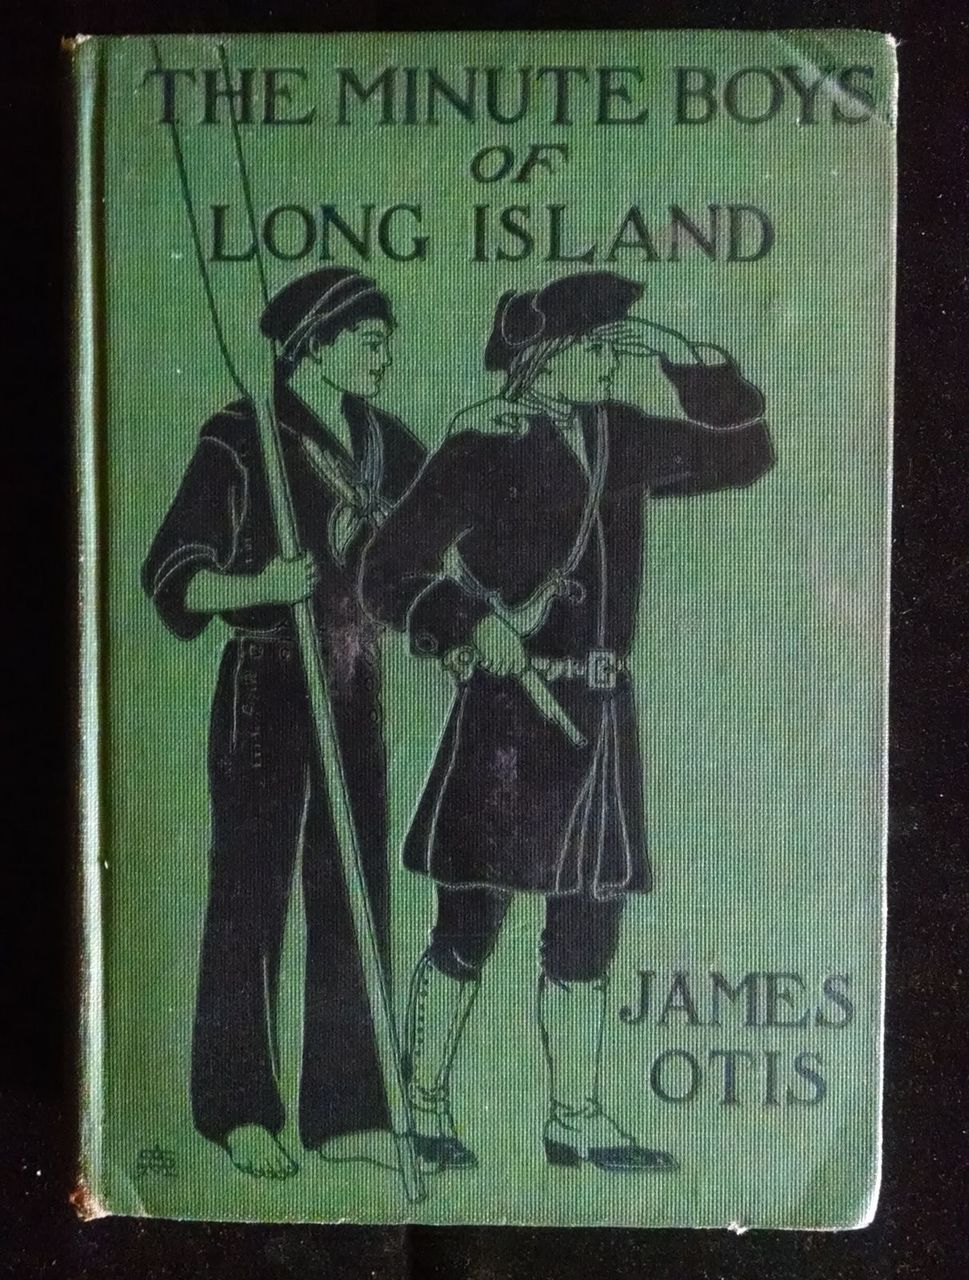 THE MINUTE BOYS OF LONG ISLAND, by Ephraim Lyttle; James Otis - 1908